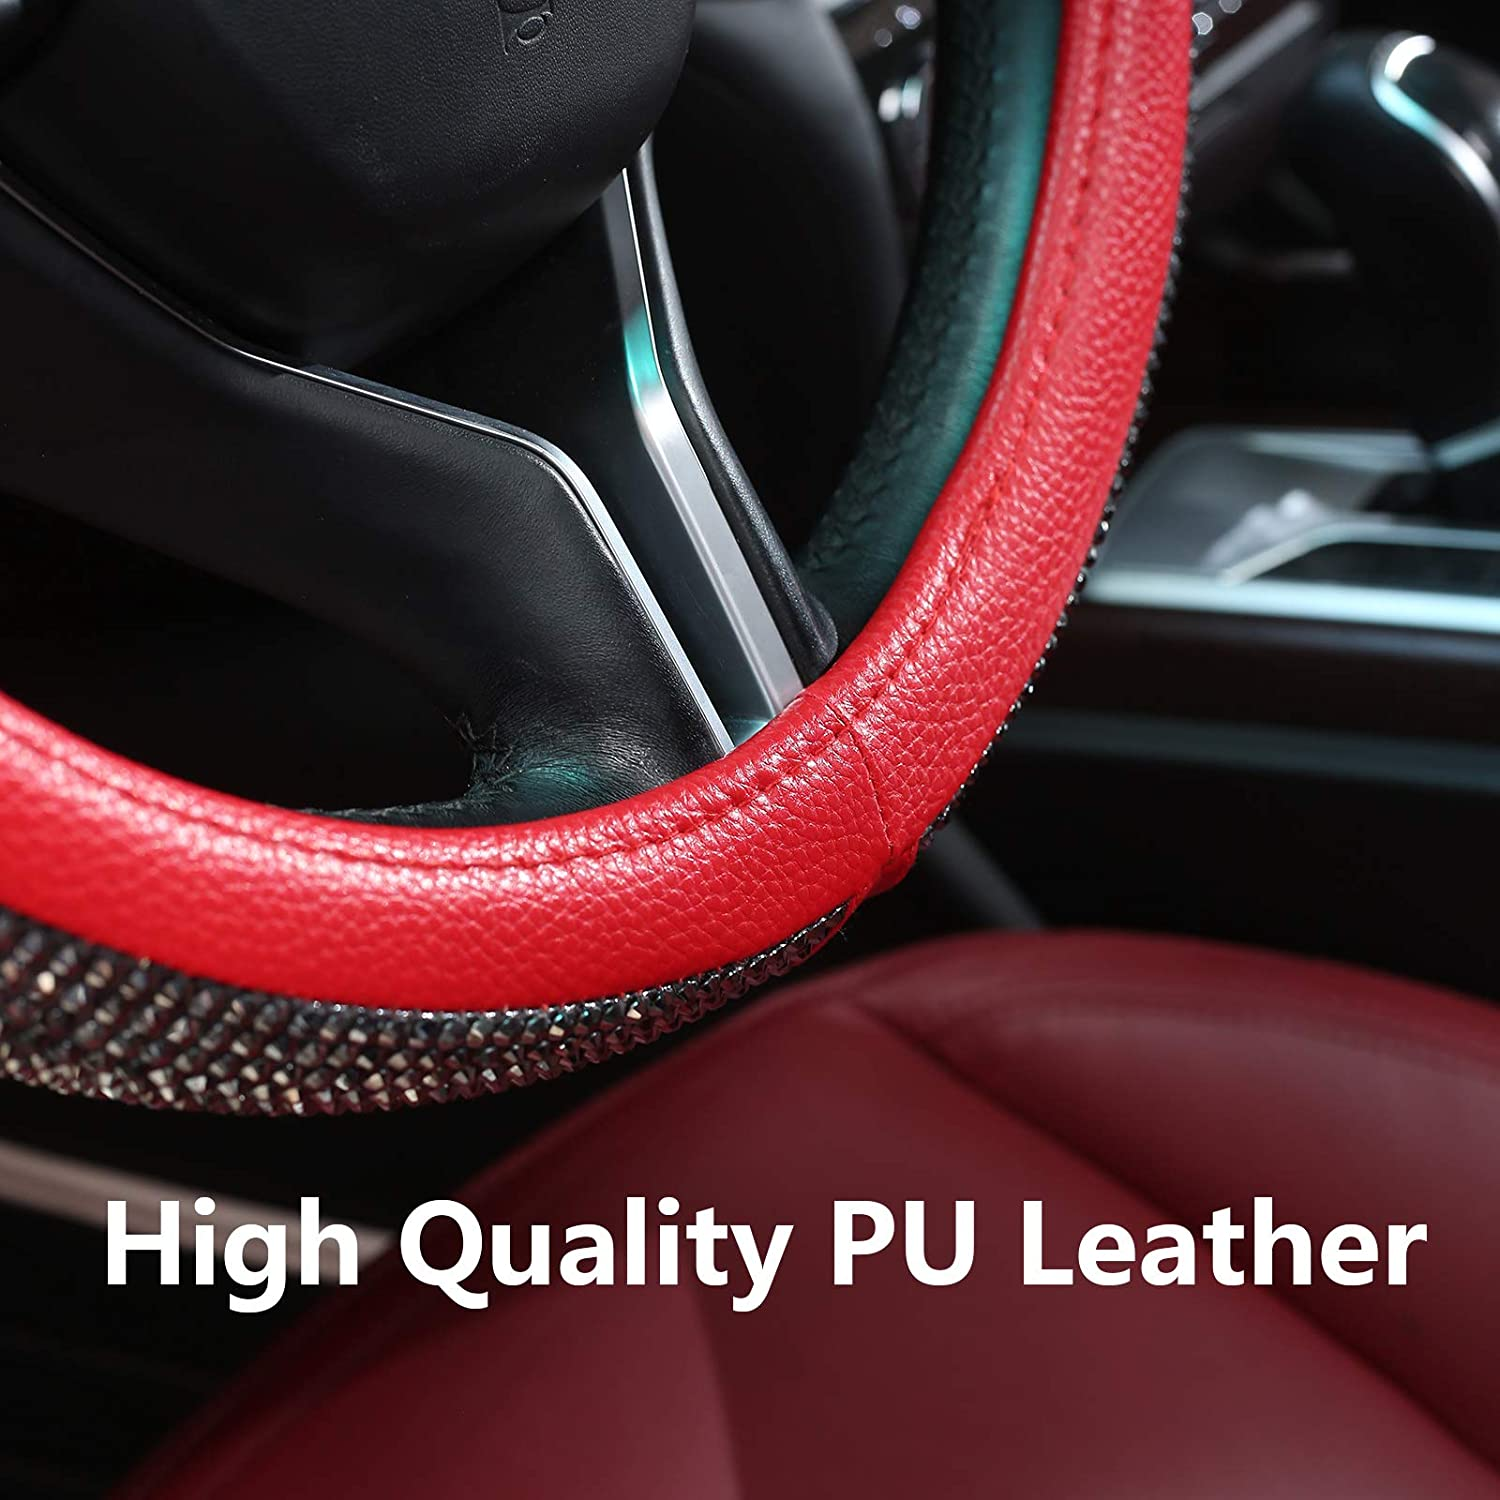 Universal Fit 15 Inch Car Wheel Protector for Women Girls(Red) Valleycomfy Diamond Leather Steering Wheel Cover with Bling Bling Crystal Resin Rhinestones